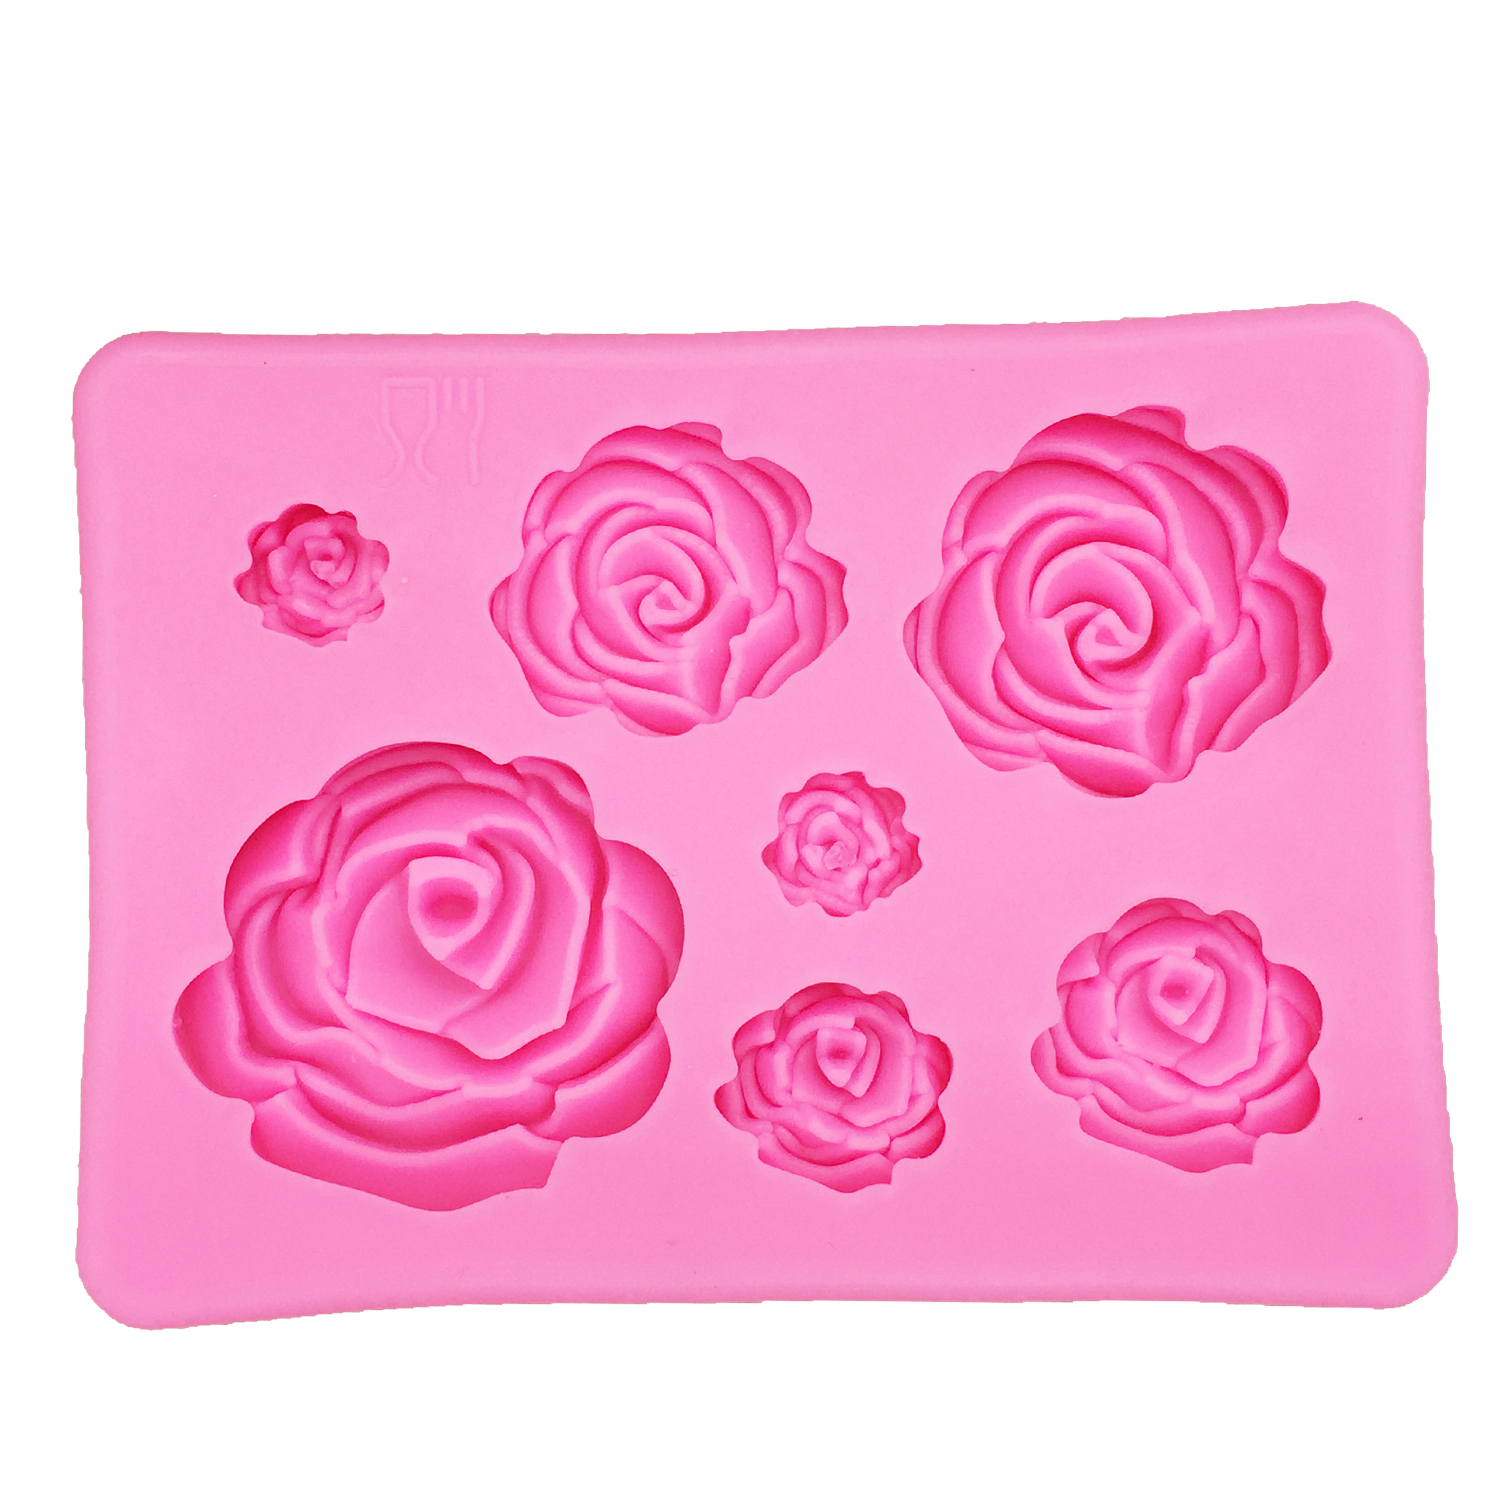 Rose Flowers Silicone Fondant Mold 5